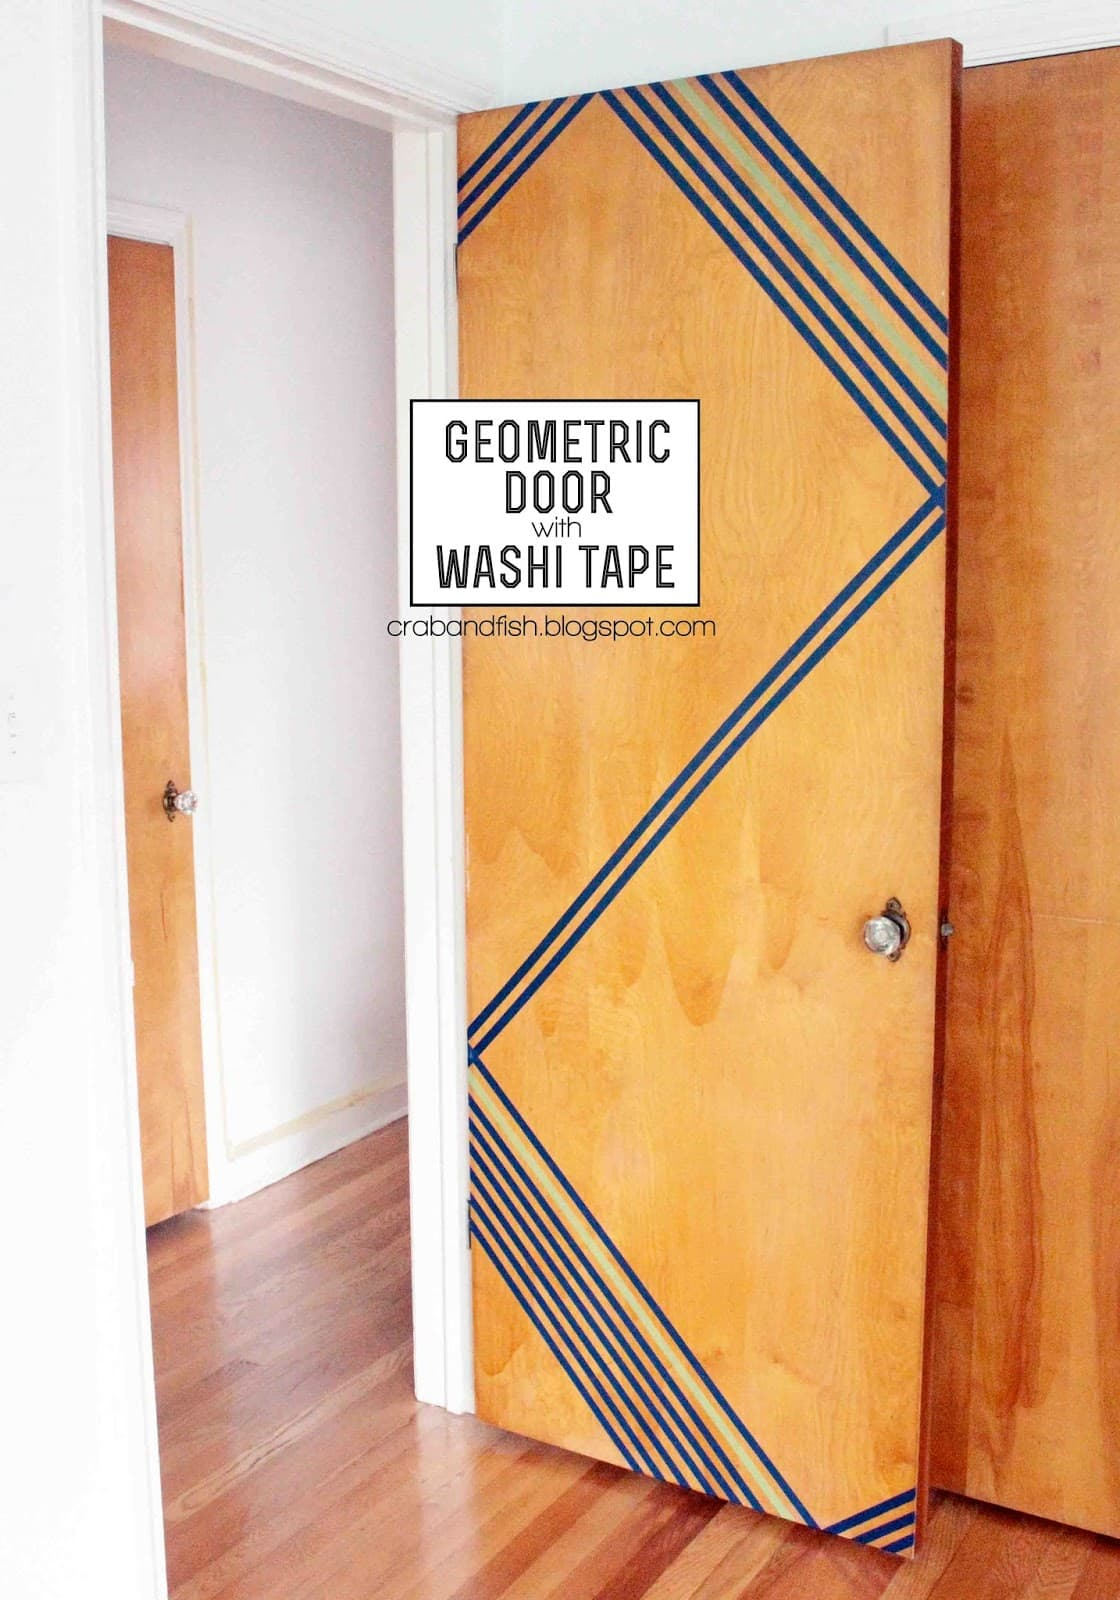 Hello Door Decal; Geometric Door With Washi Tape ...  sc 1 st  Blinds & Dorm Room Decor 101: Make Your Front Door Fab - The Finishing Touch